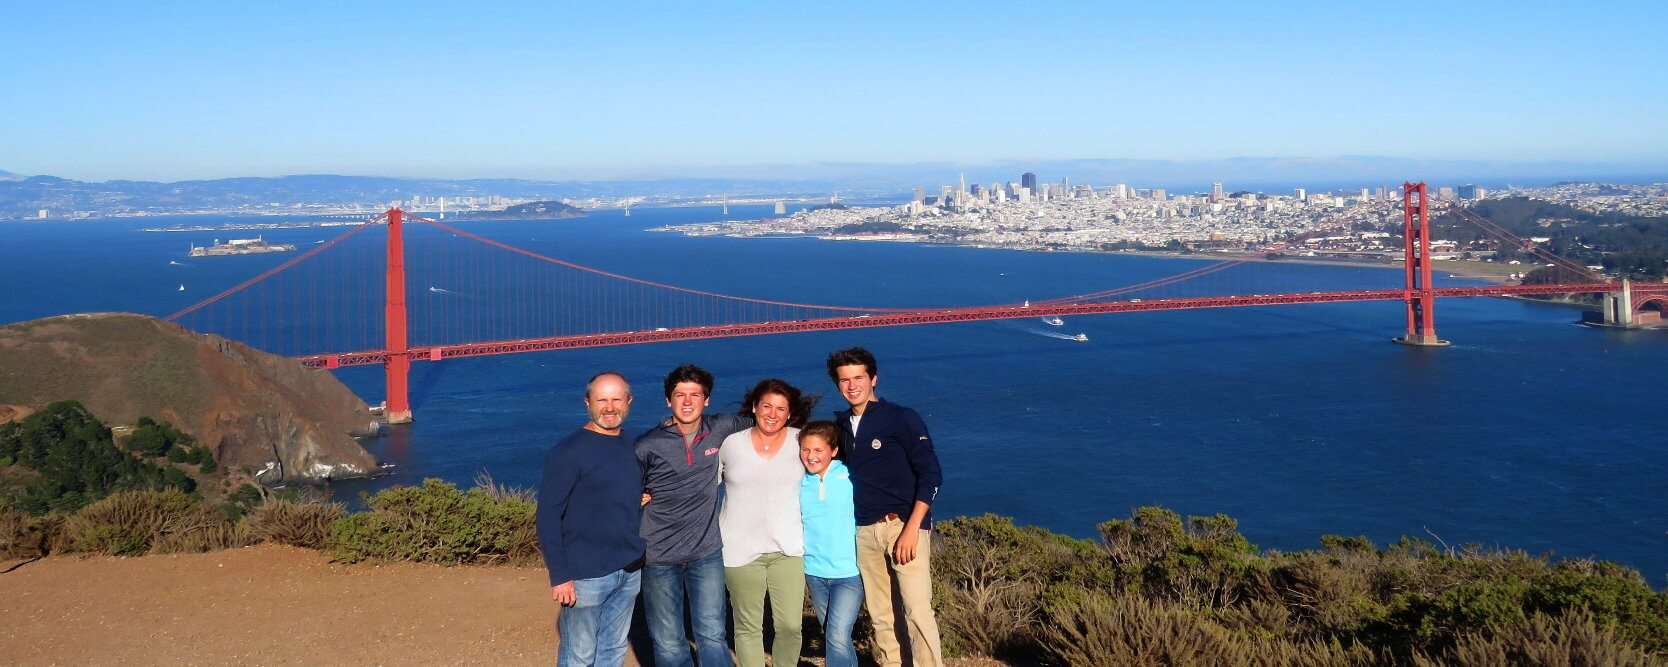 san_francisco_familly_tour_packages